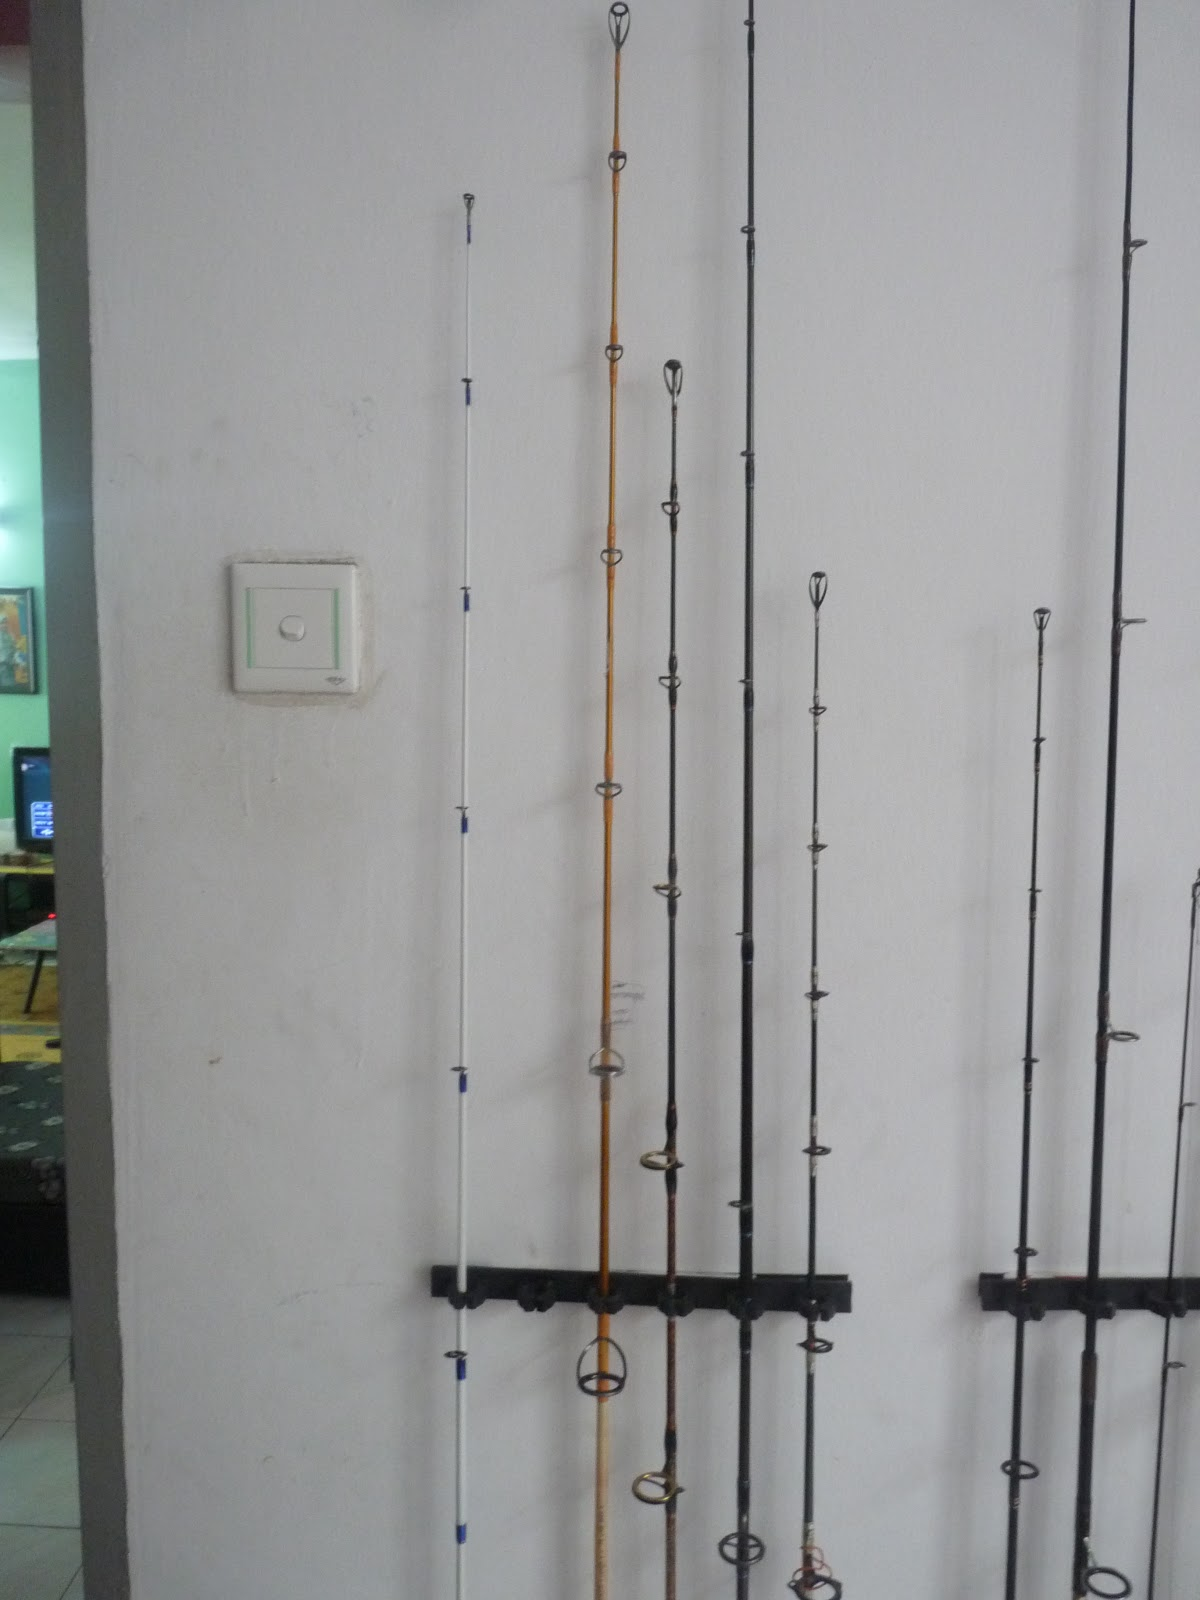 kEdaI PanCinG Online: MY FISHING RODS COLLECTION FOR SALE